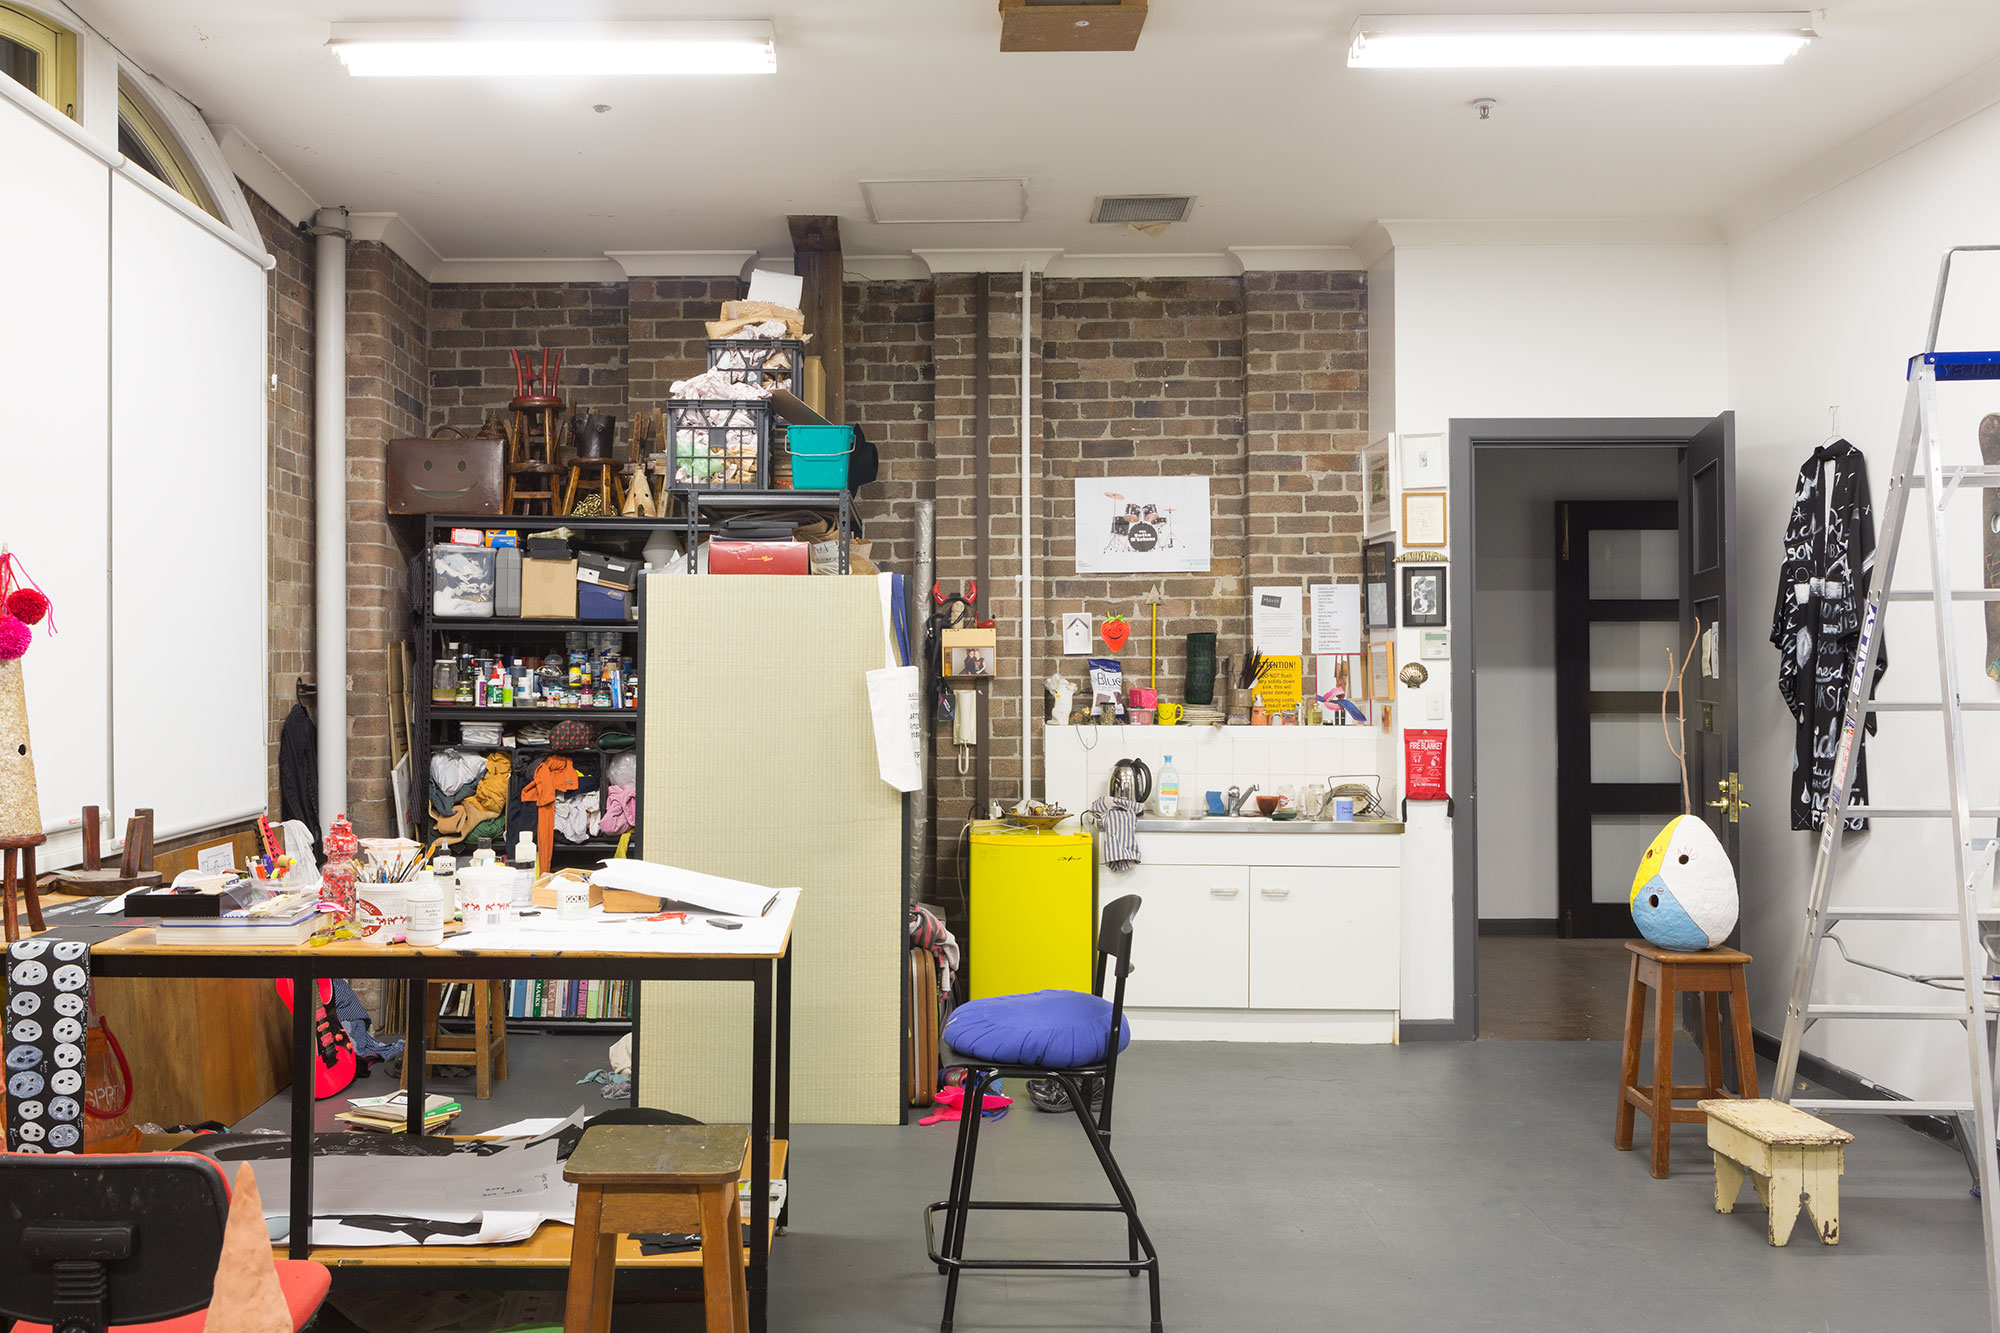 Nell's Artspace studio, 2016. Photo: Jessica Maurer